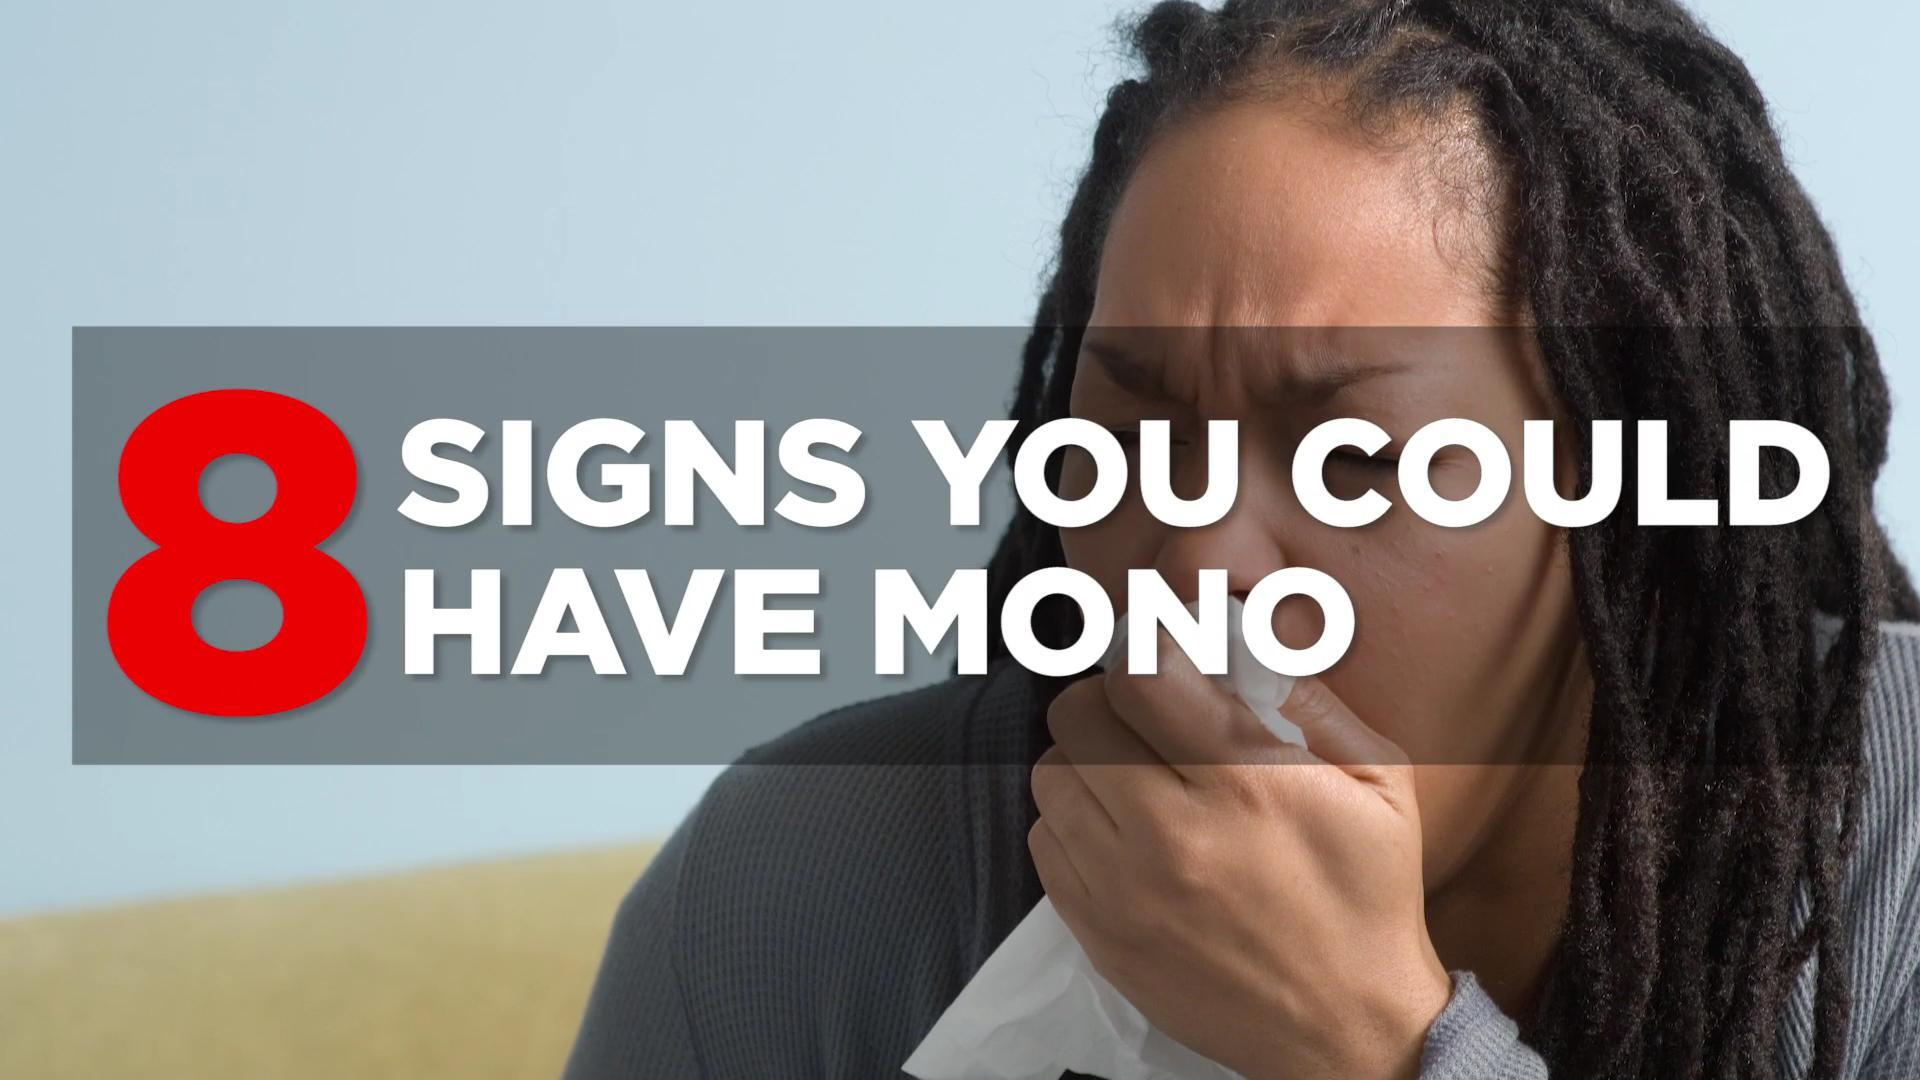 What is mono?